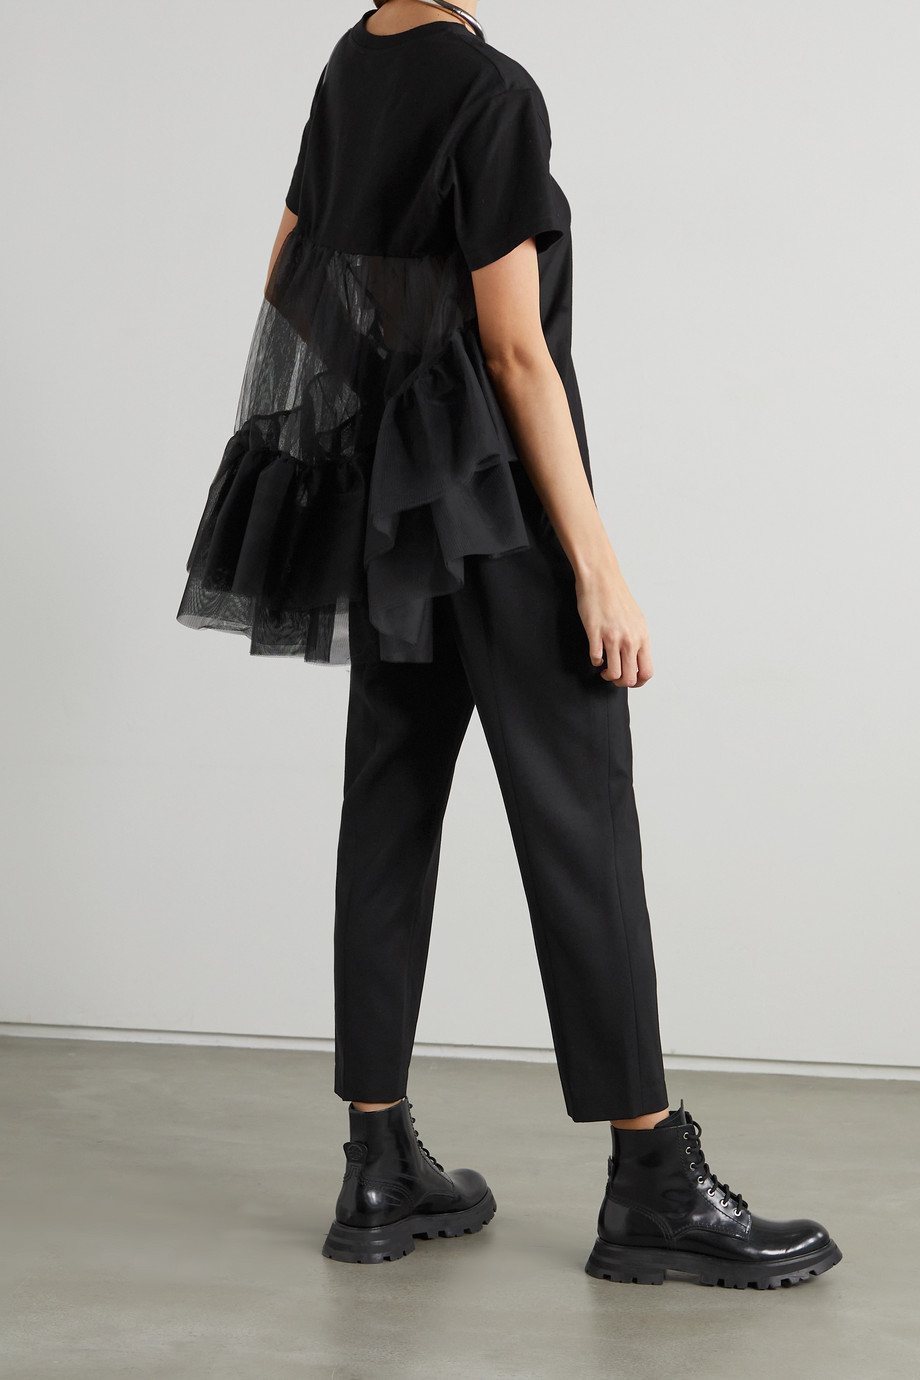 ALEXANDER MCQUEEN Cotton-jersey and ruffled tulle T-shirt